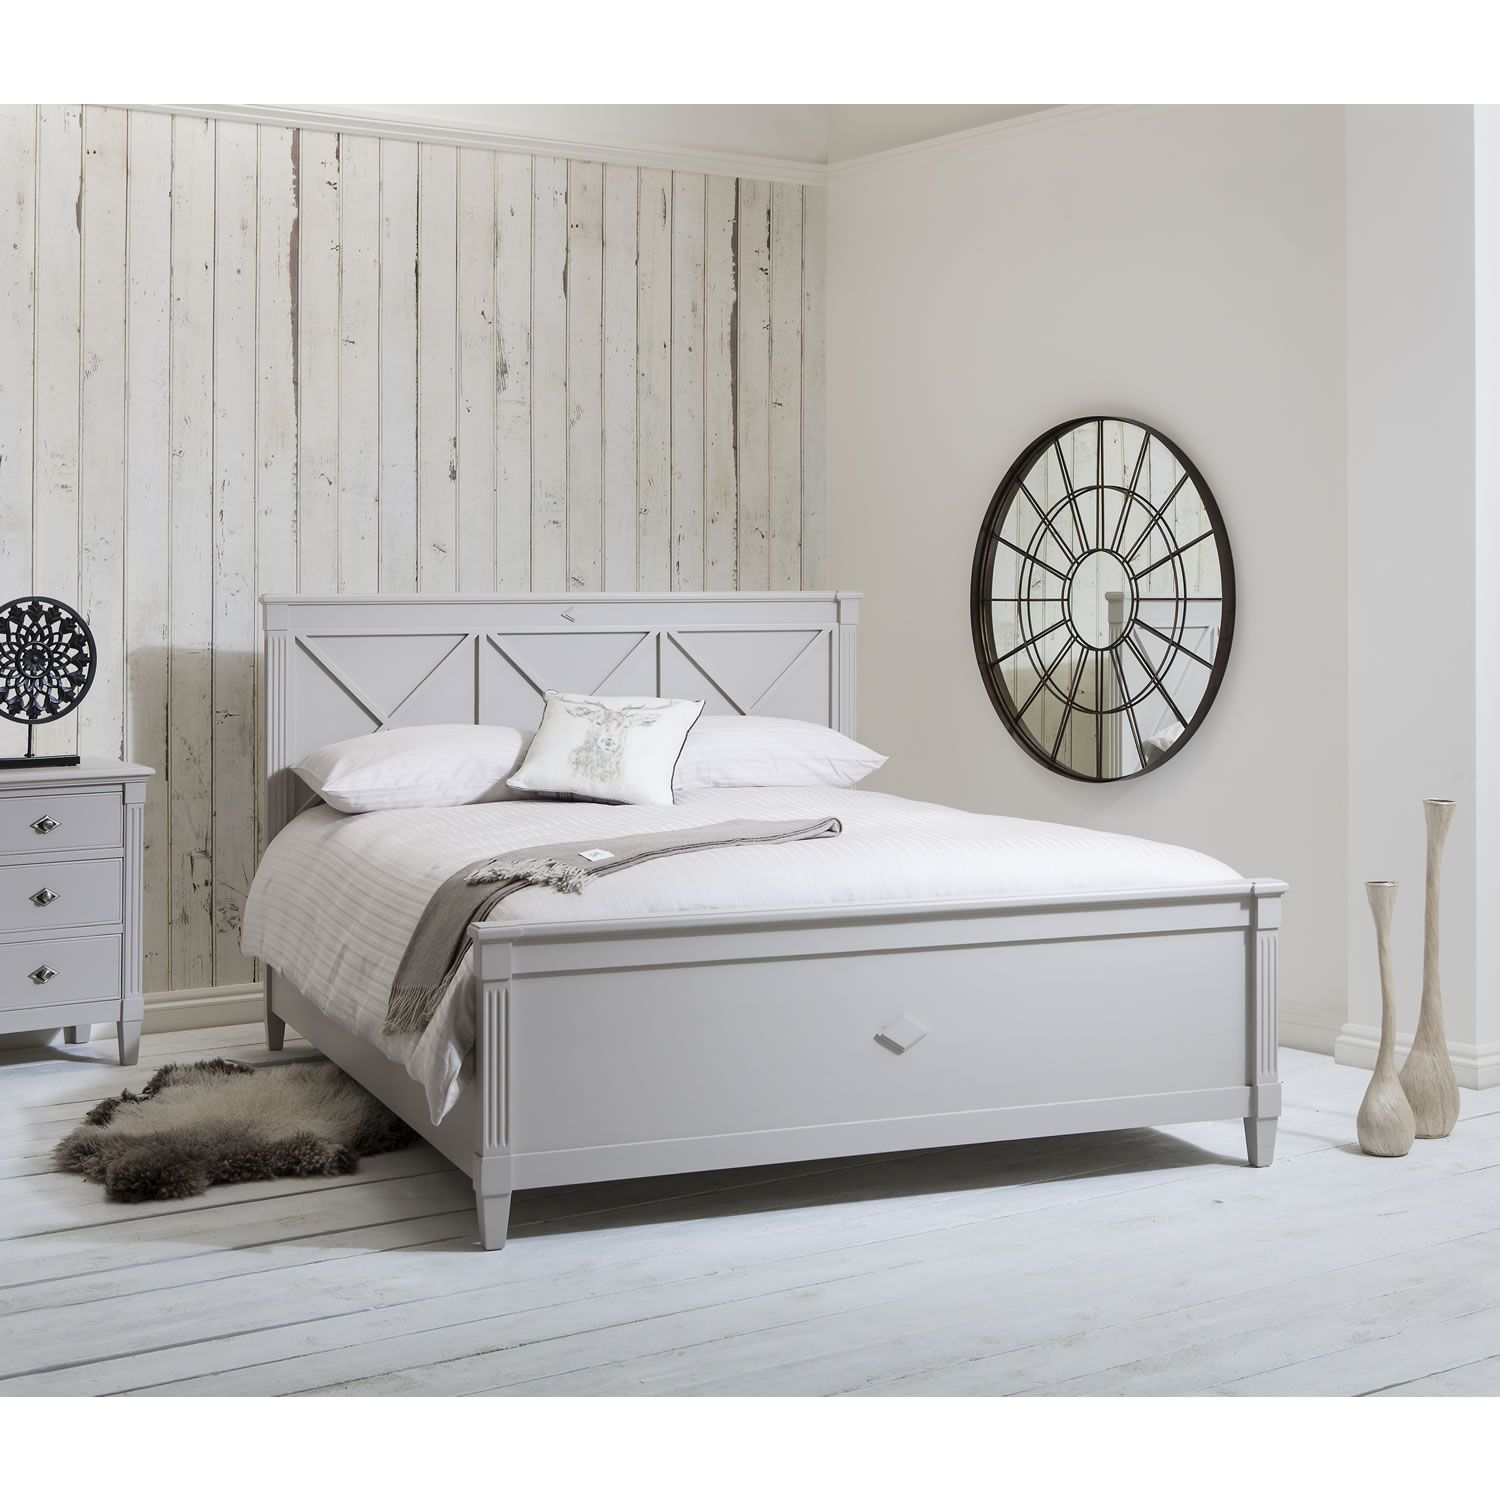 Kiss Bed In Elephants Breath Next Day Delivery Kiss Bed In